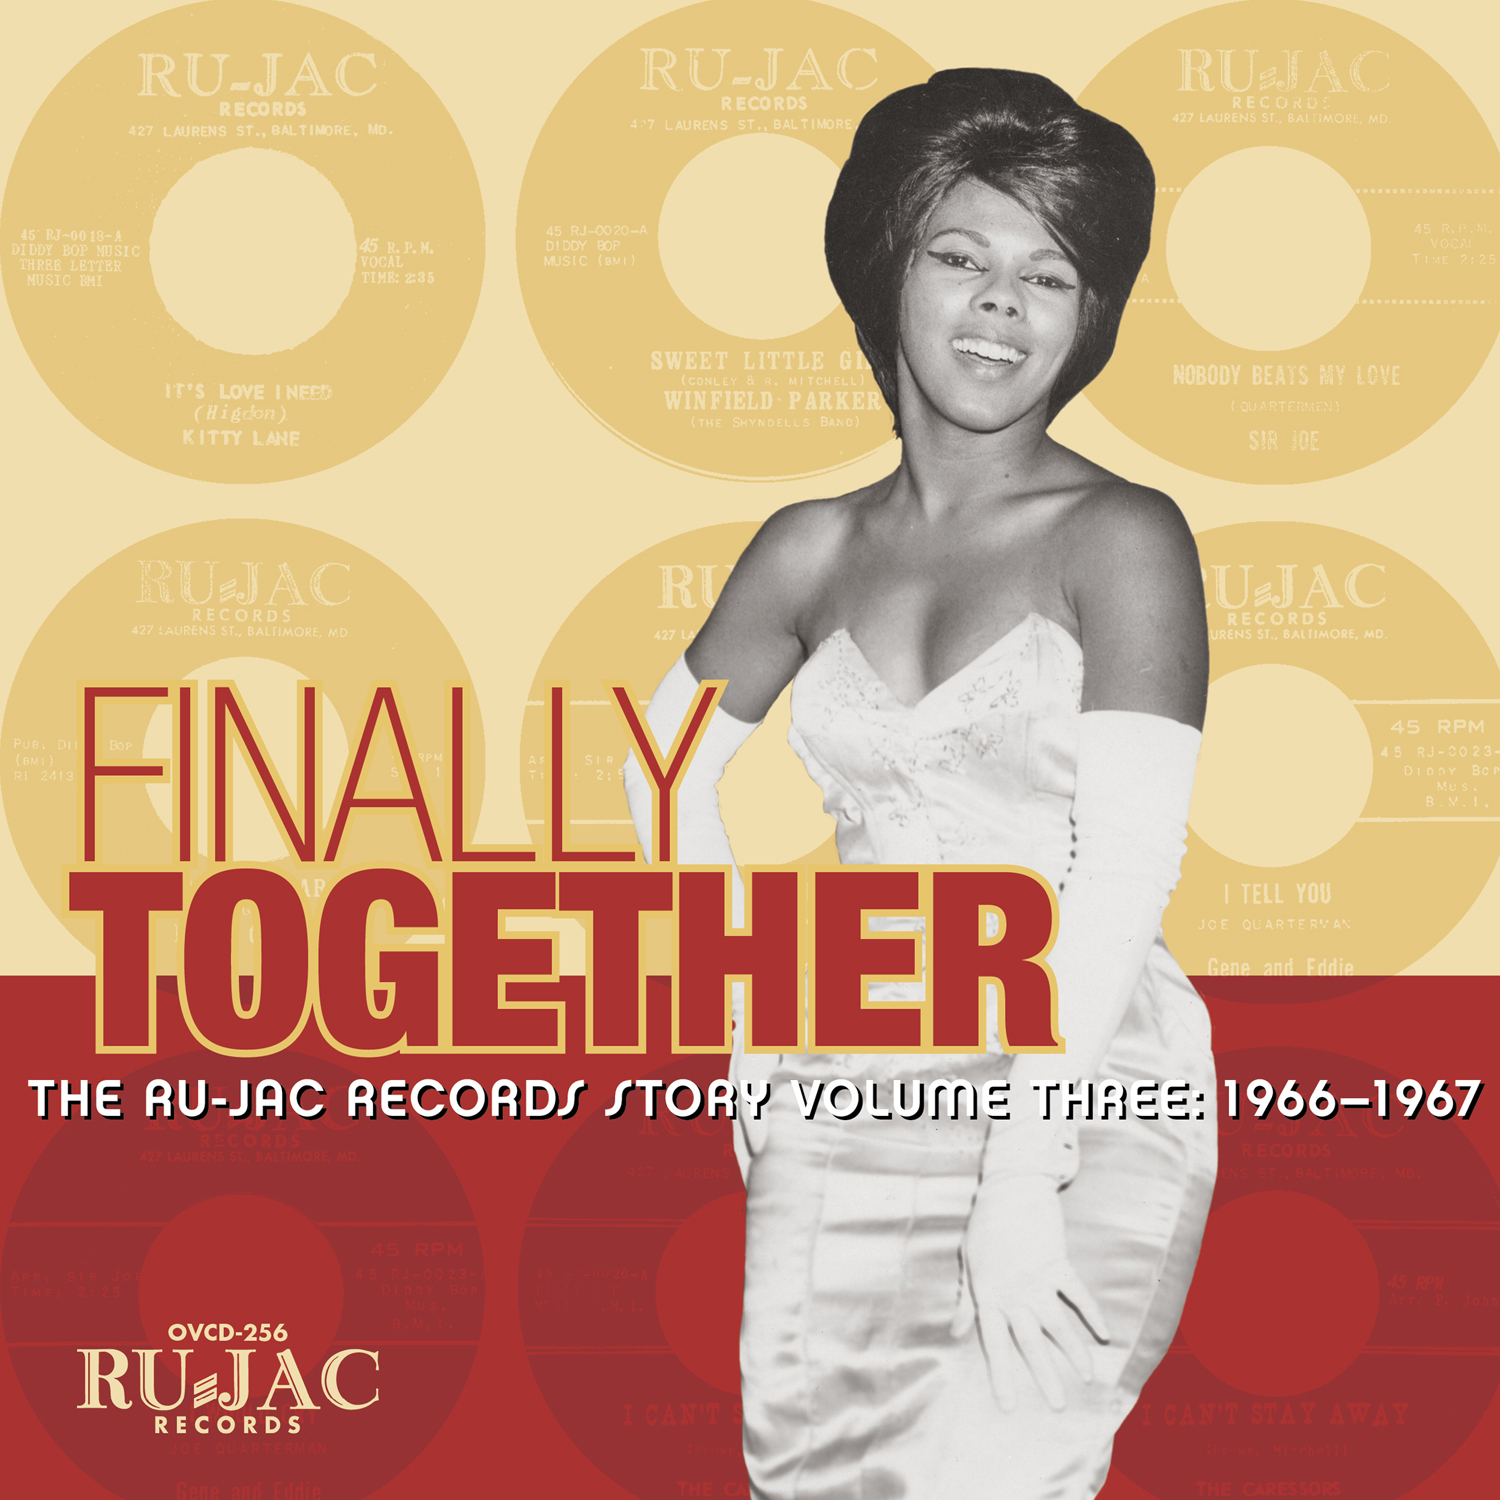 The Ru-Jac Records Story vol 3: Finally Together 1966 – 1967 – v/a